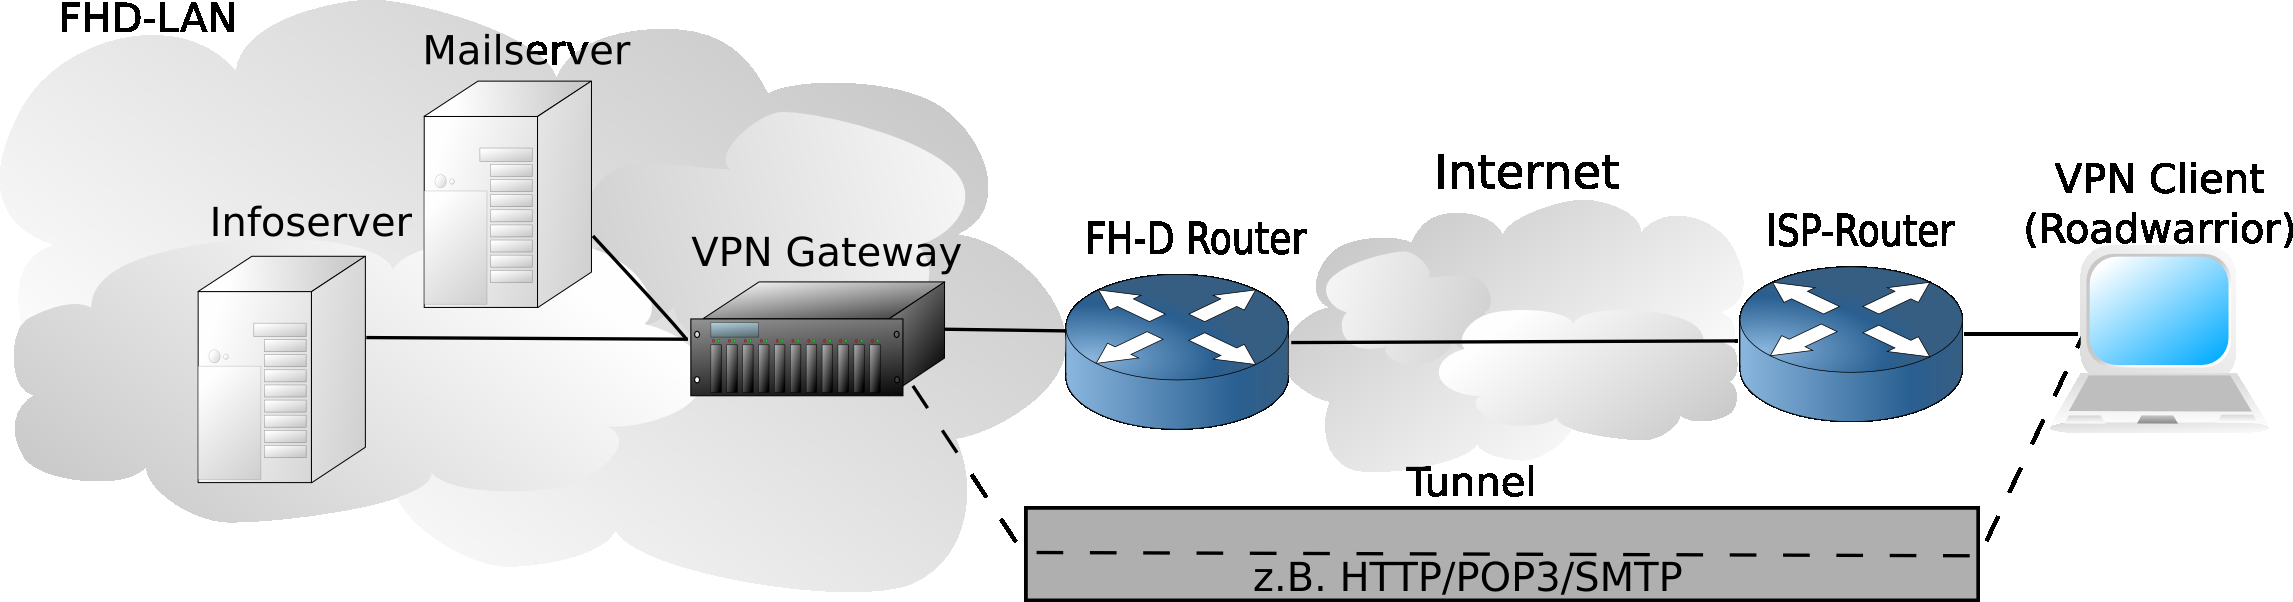 4.3 FH-D VPN Gateway 4 VIRTUAL PRIVATE NETWORK (VPN) Bewertungen von VPN Implementierungen unter Linux durch Peter Gutmann in [Gp03] Quellcode verfügbar (Open Source) cross plattform Kompatibilität